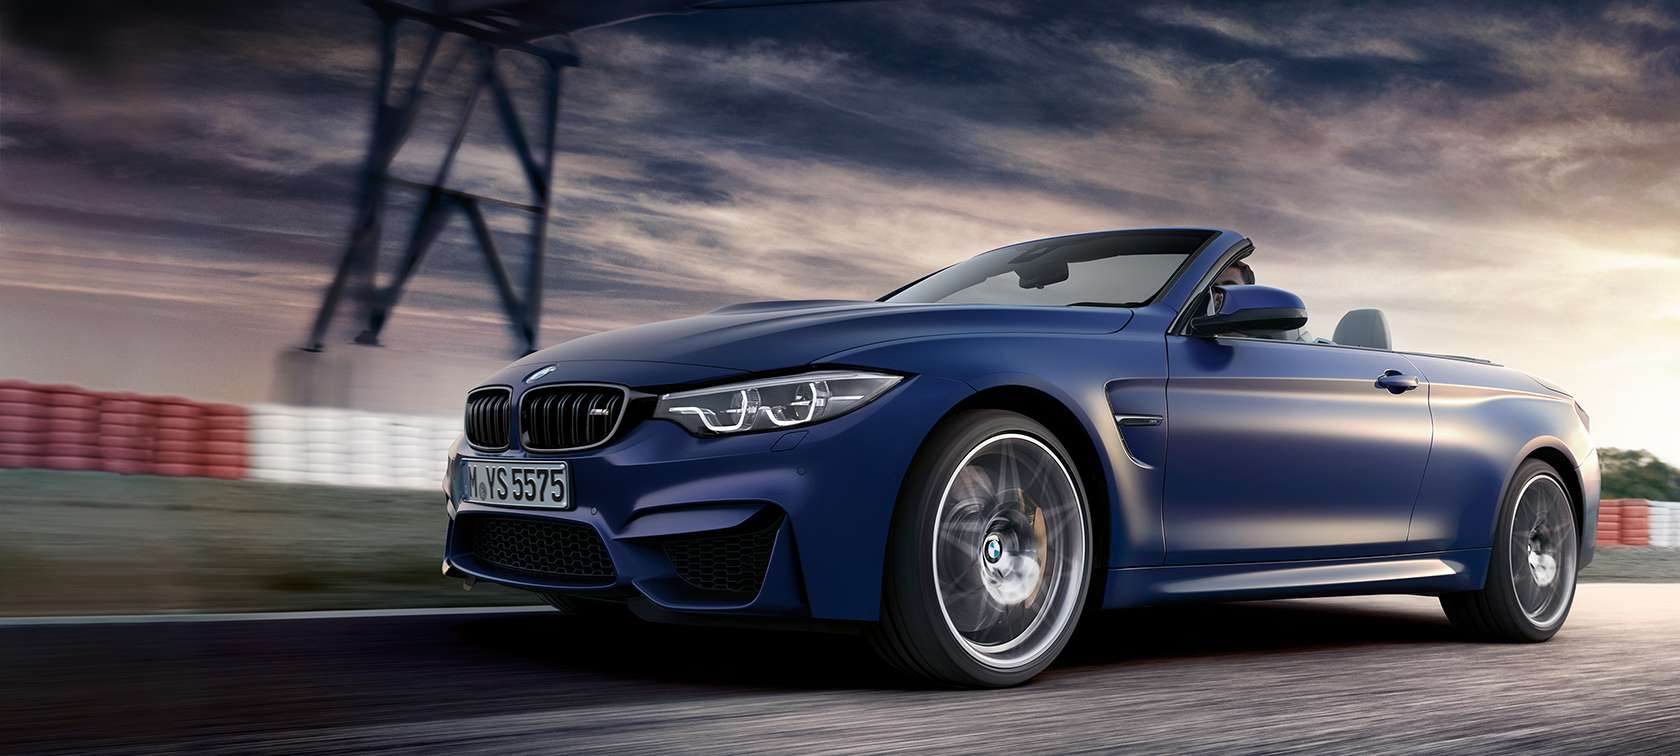 Much Are Bmw M4 Hd Wallpapers